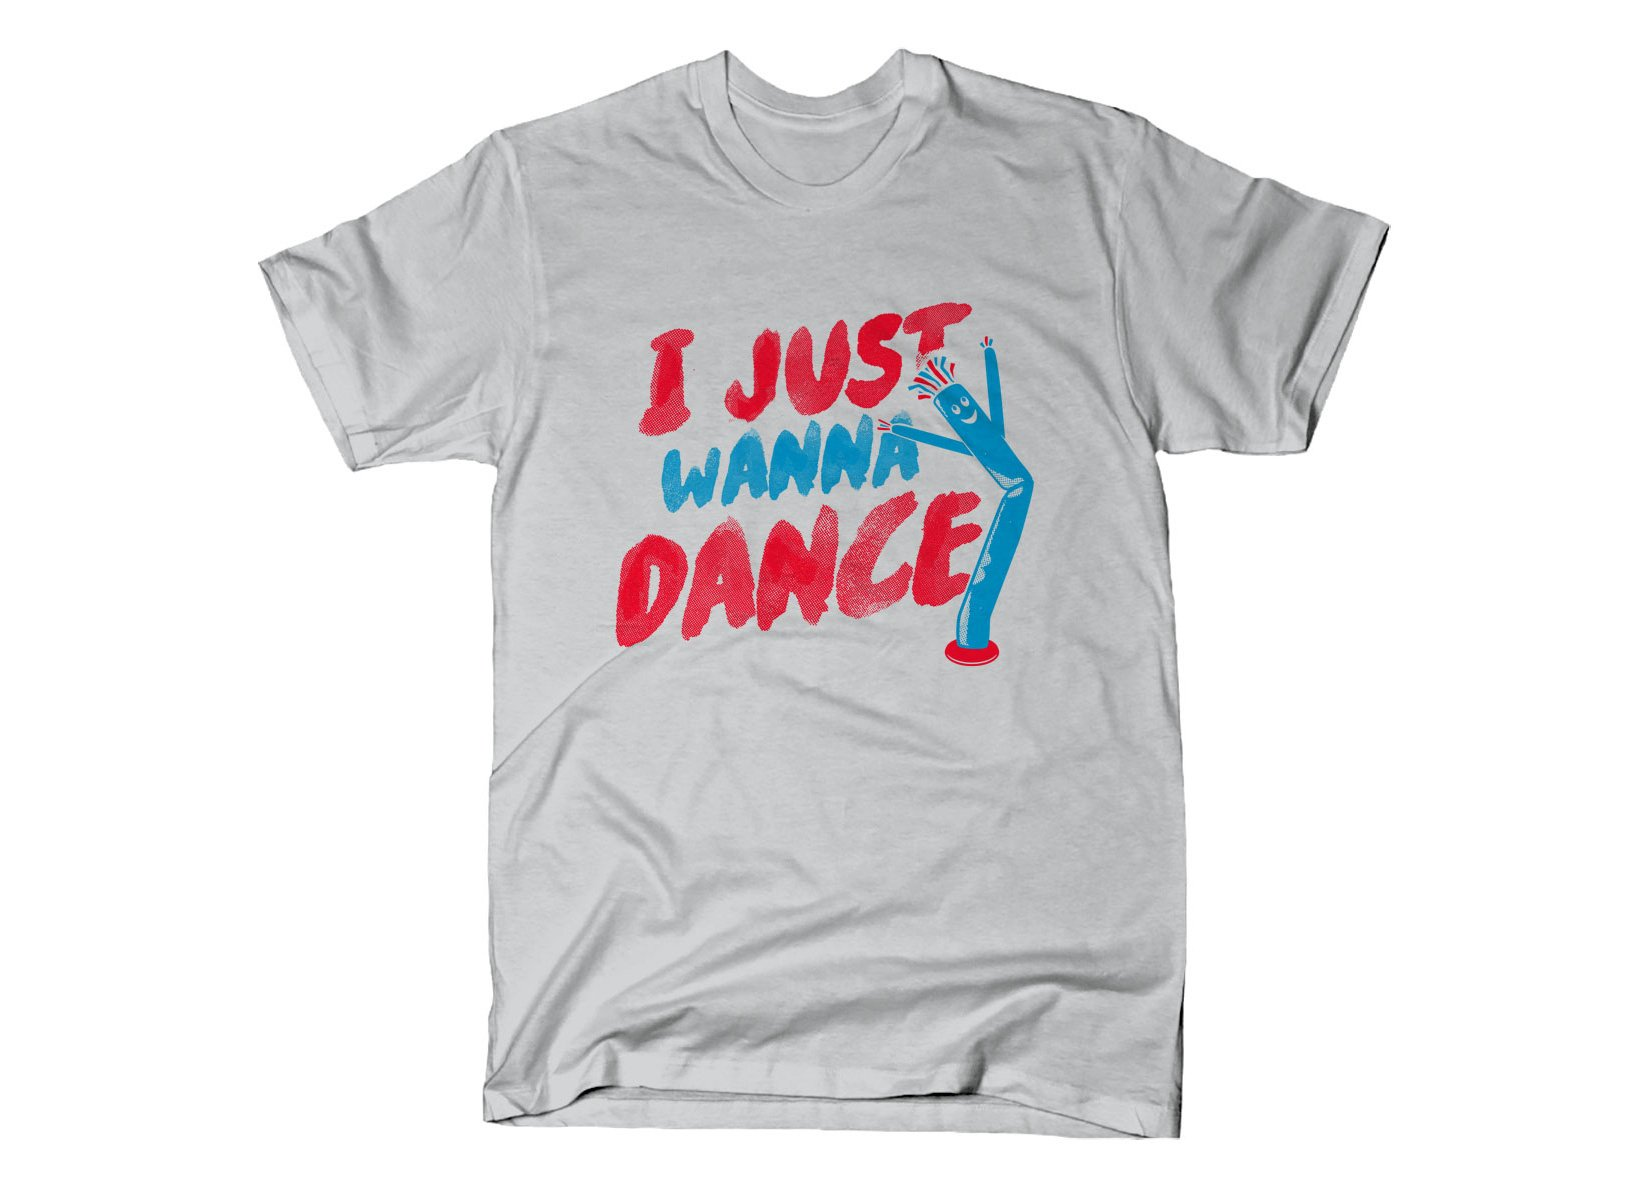 I Just Wanna Dance on Mens T-Shirt